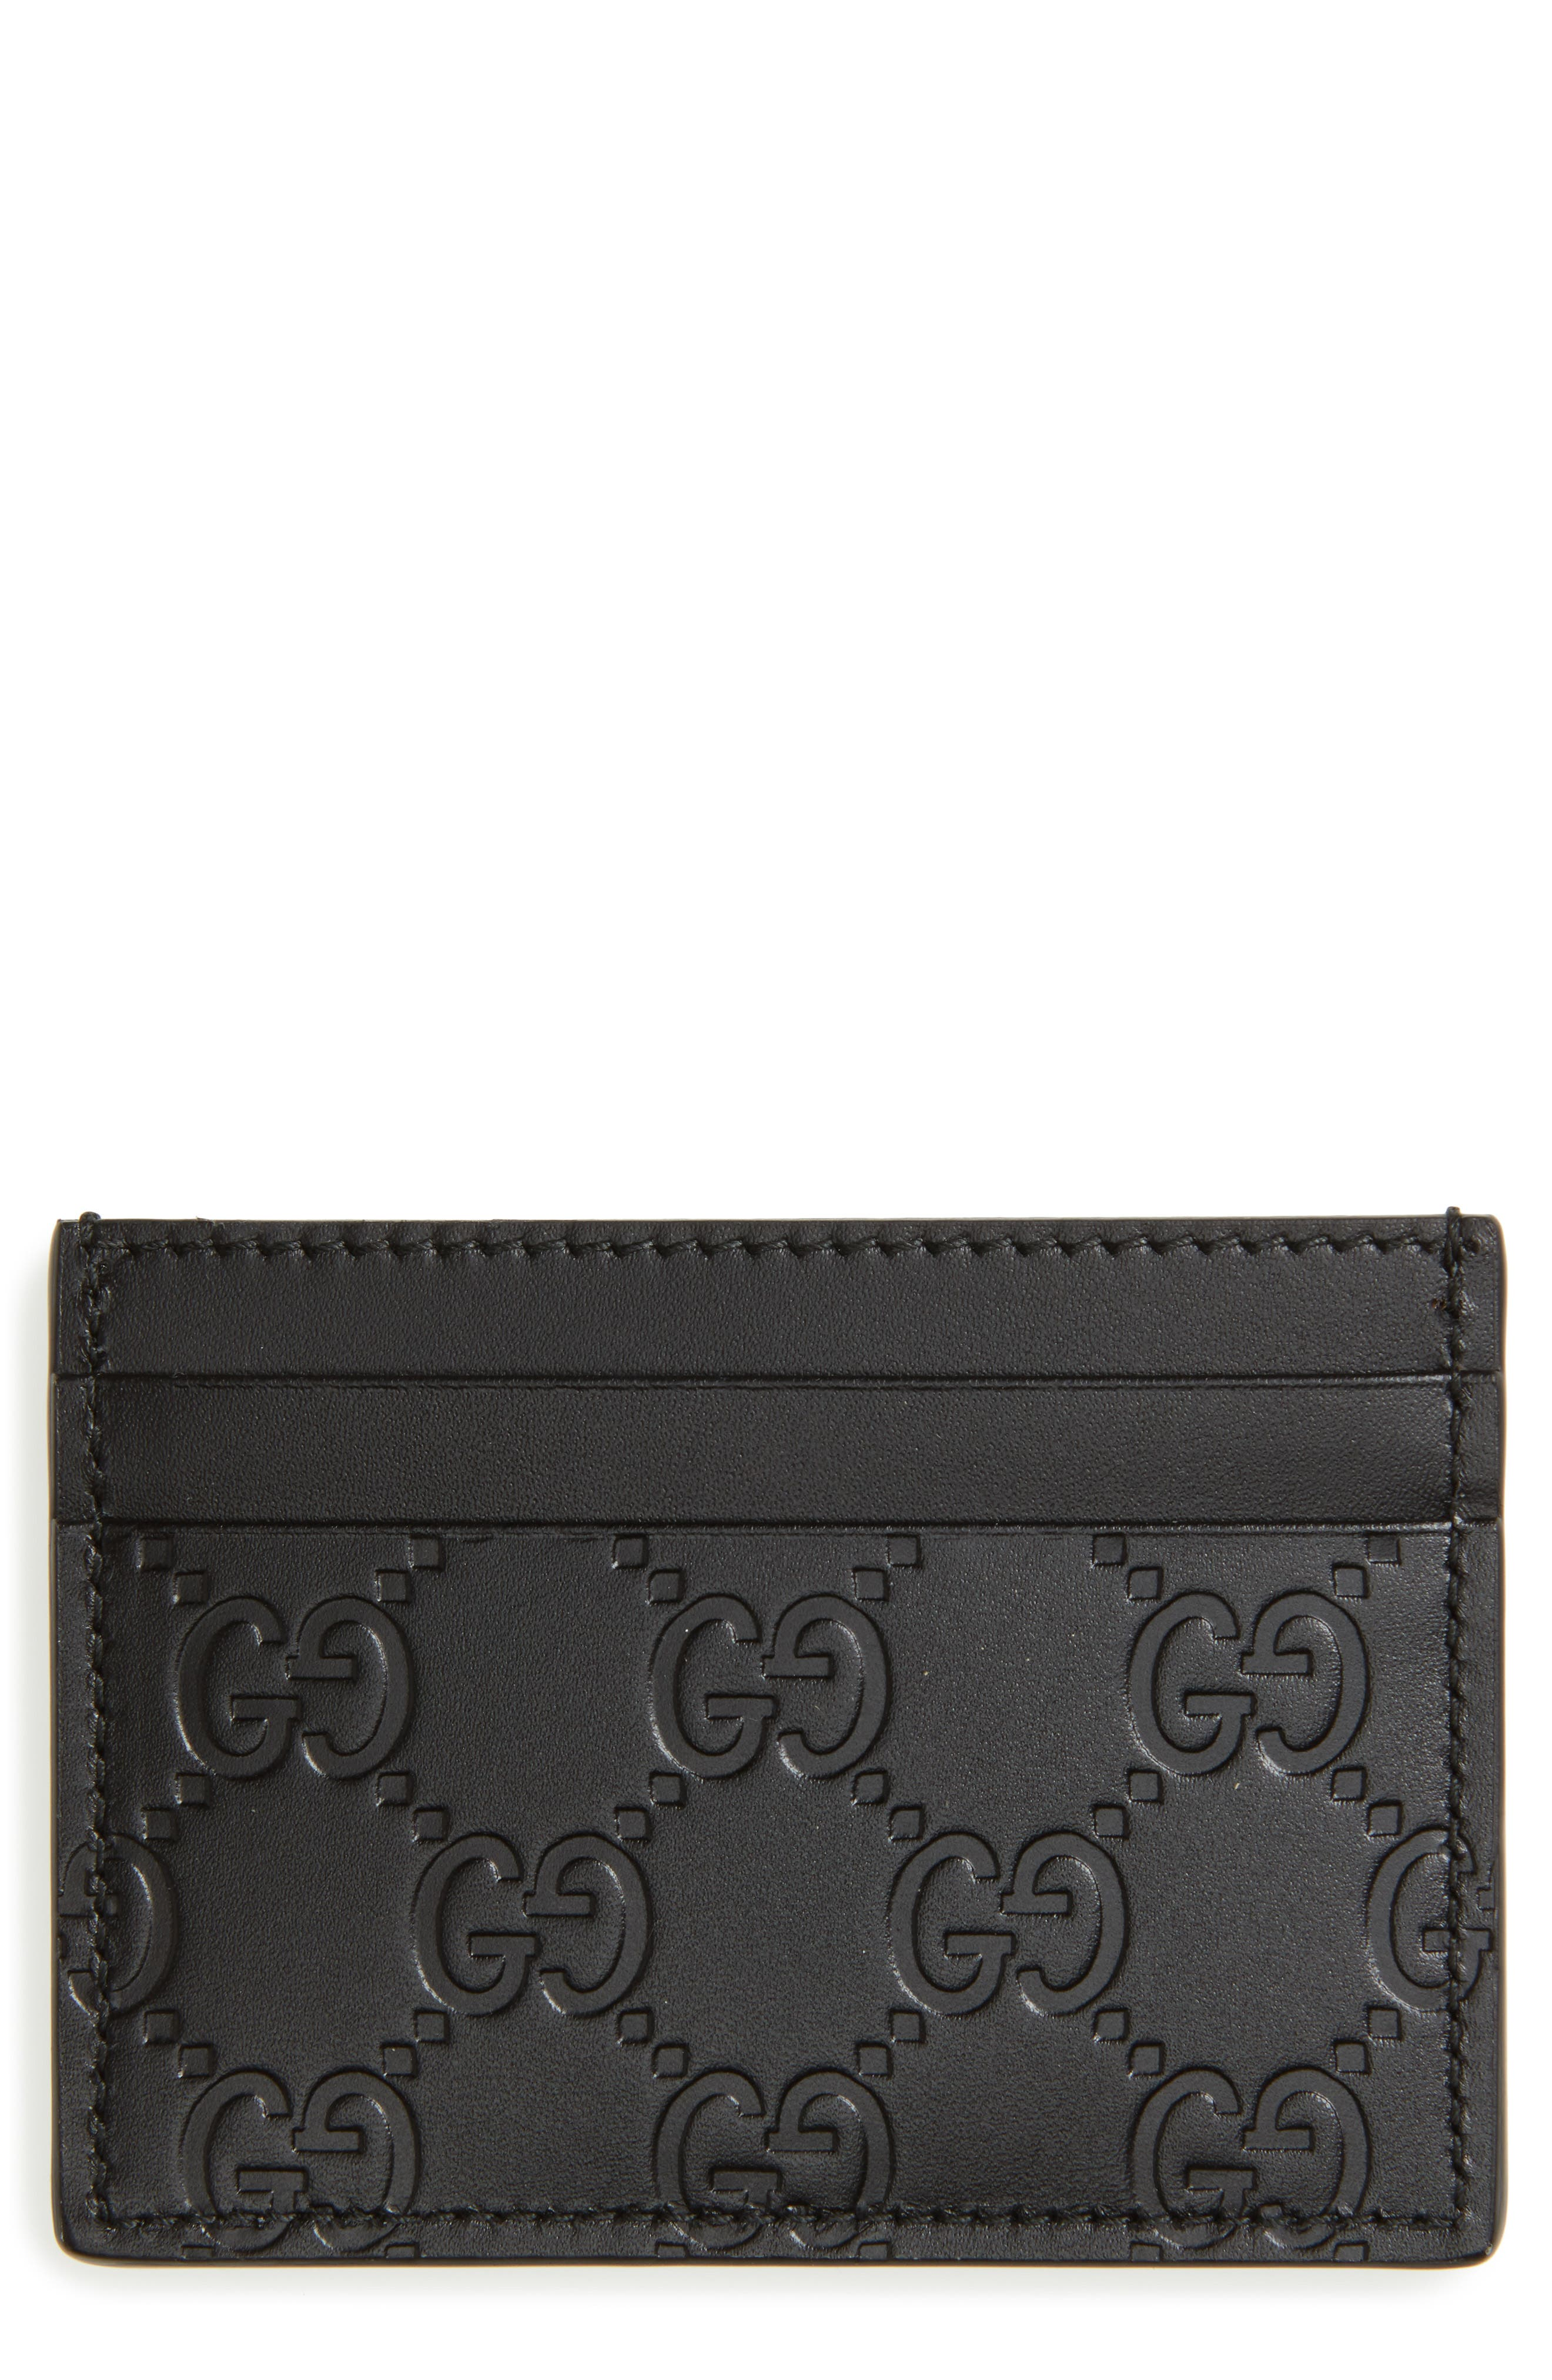 Alternate Image 1 Selected - Gucci Leather Card Case